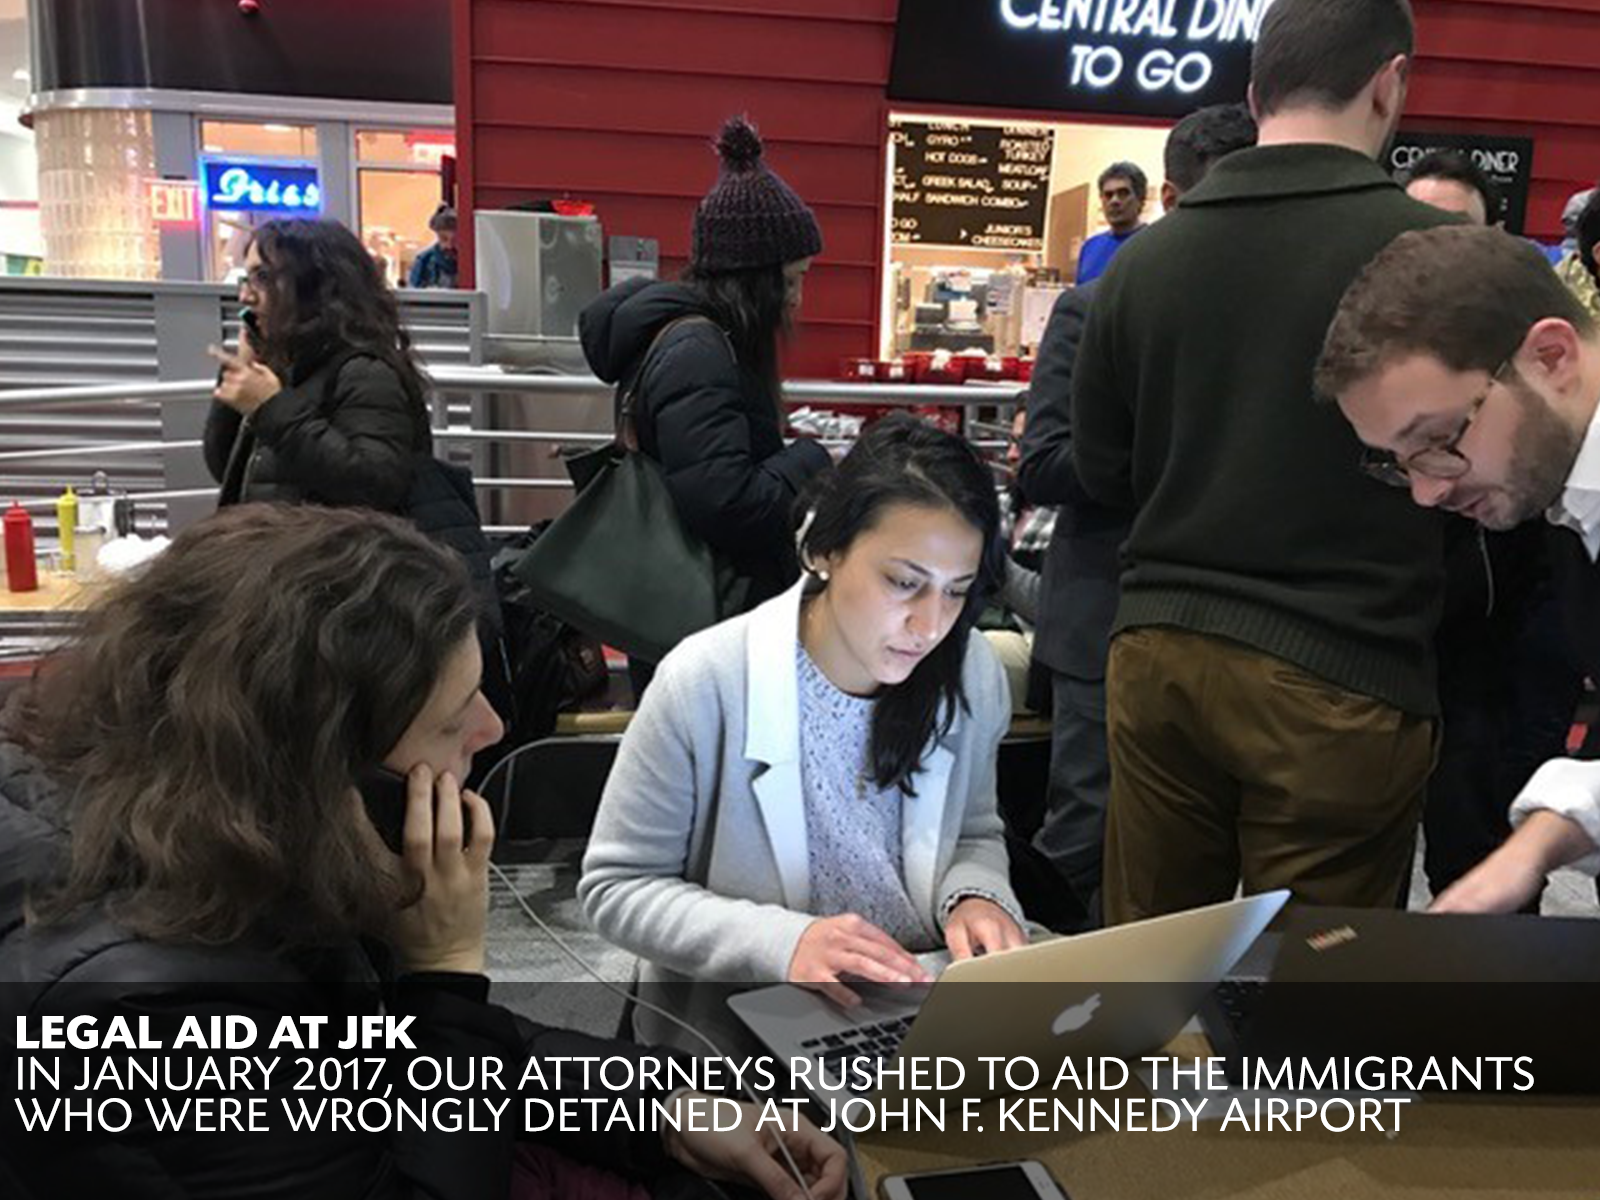 legal aid at jfk In January 2017, our attorneys rushed to aid t.png